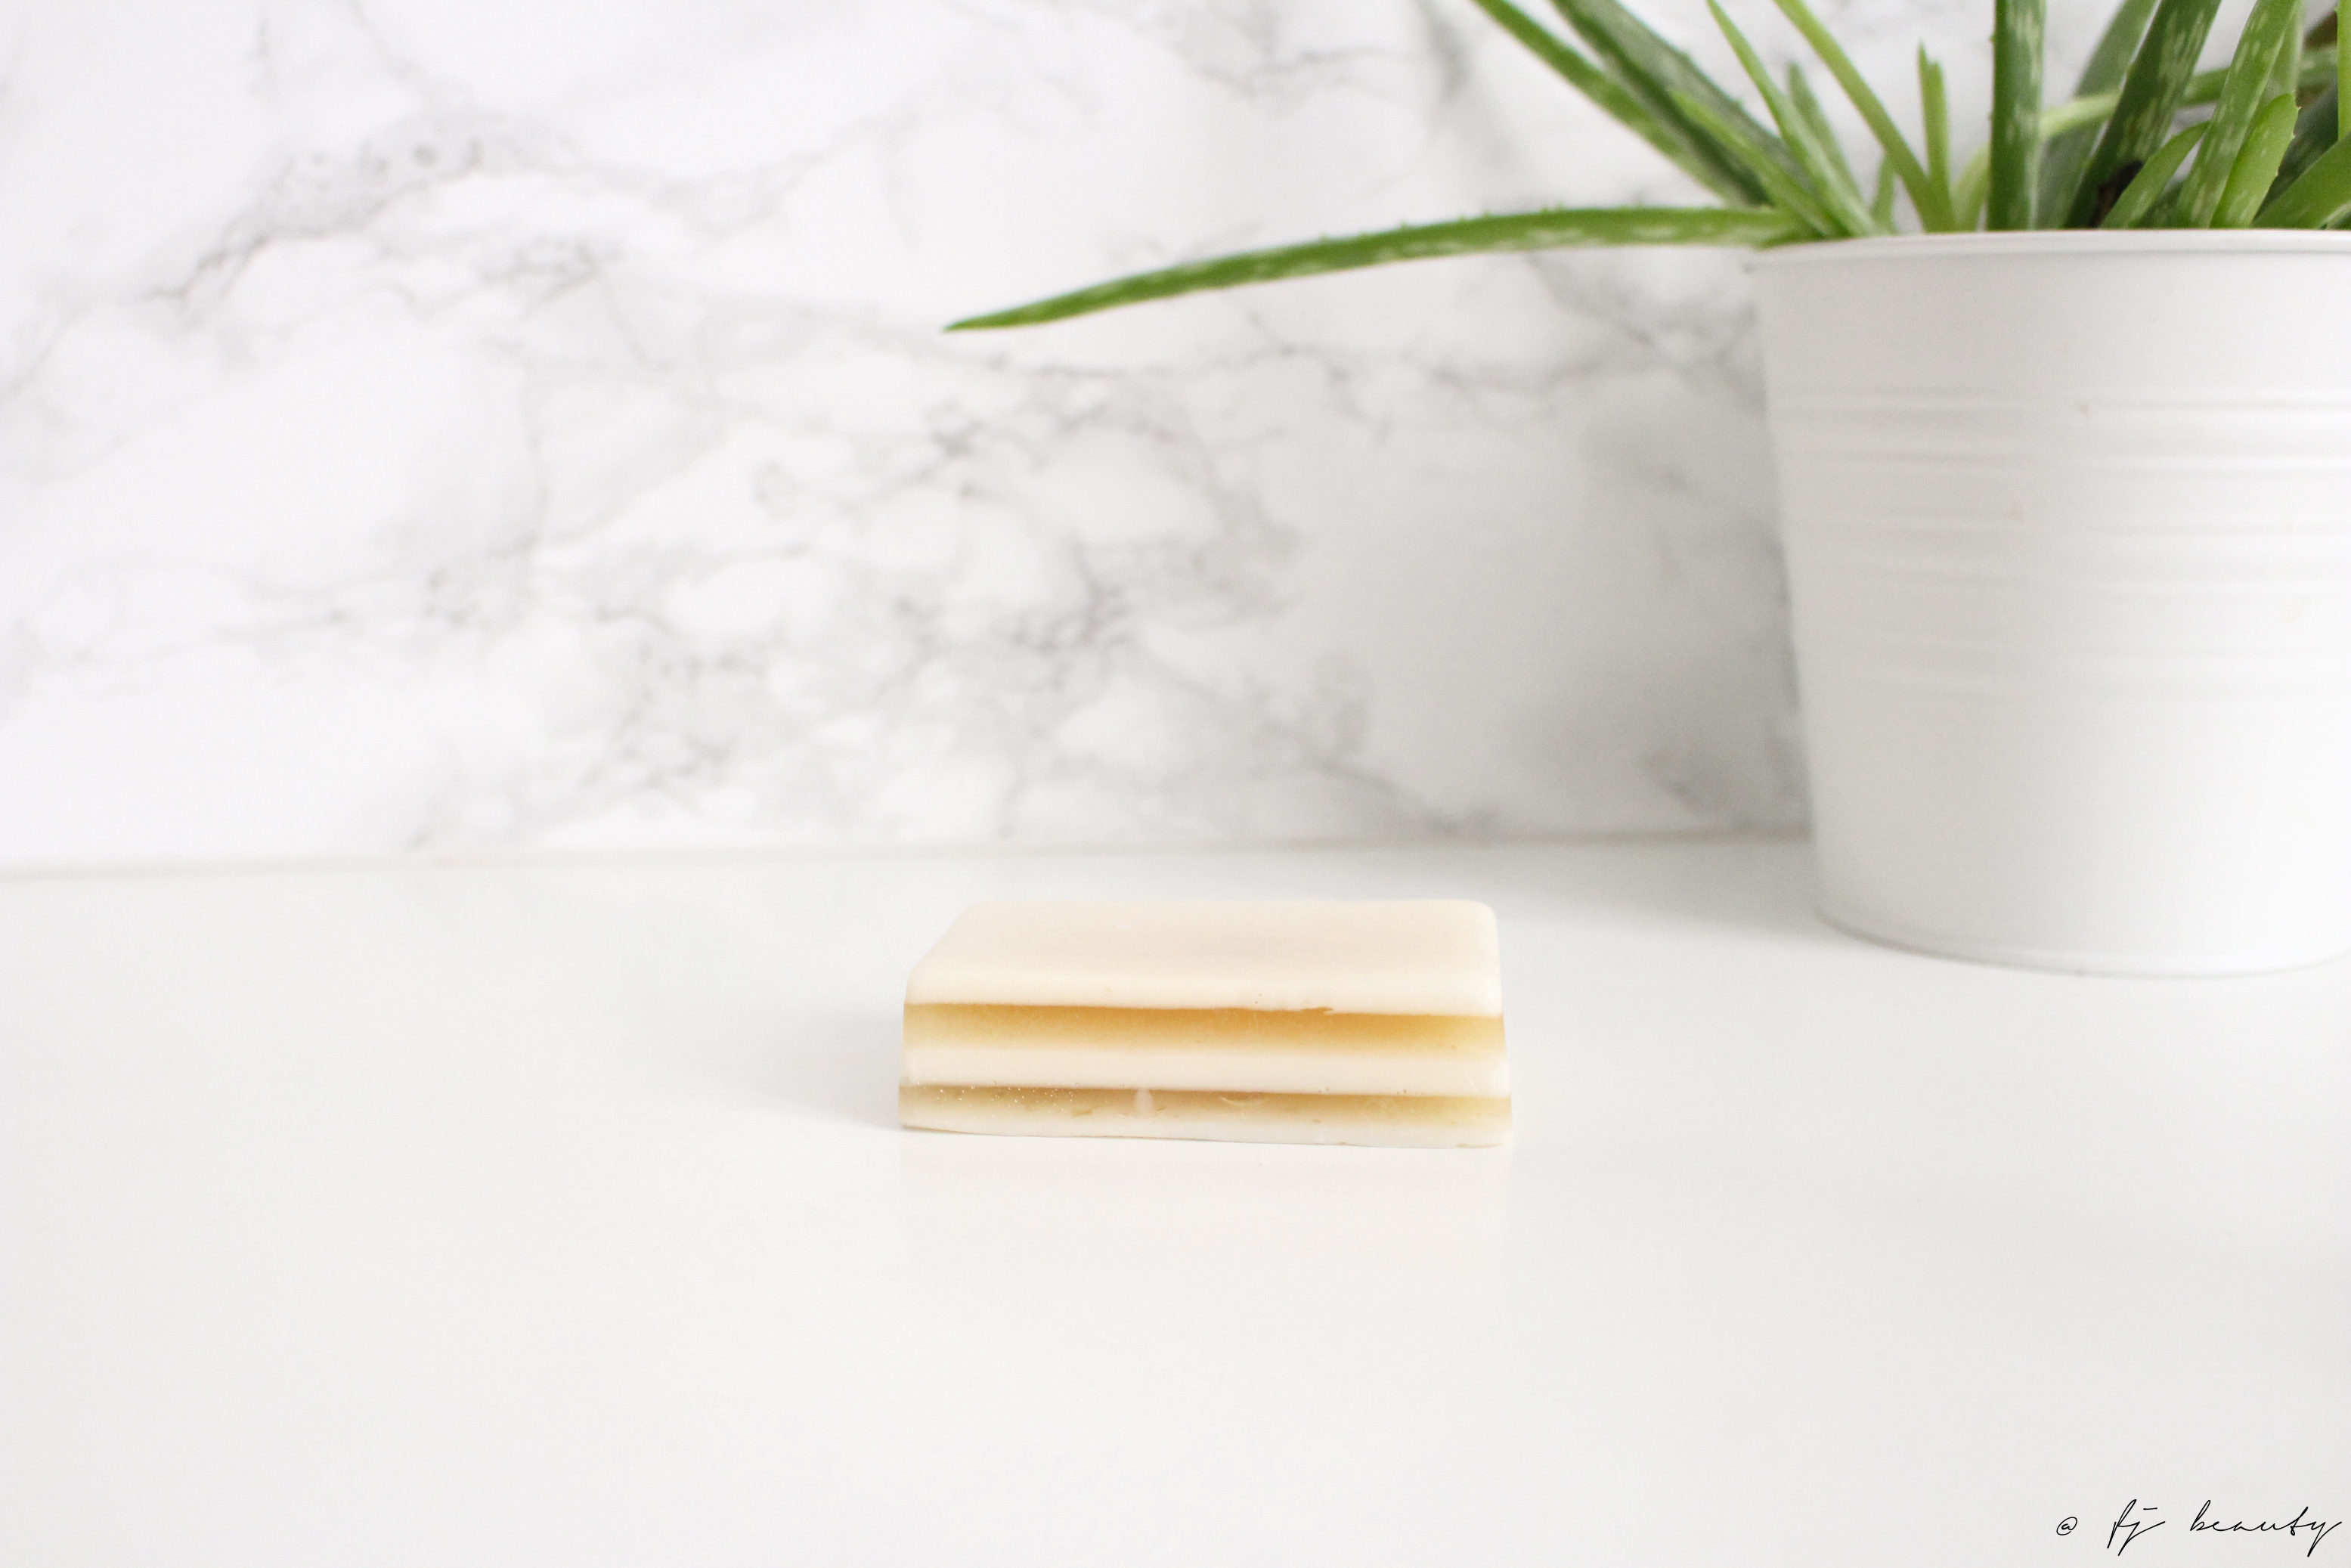 bo beam shampoo bar